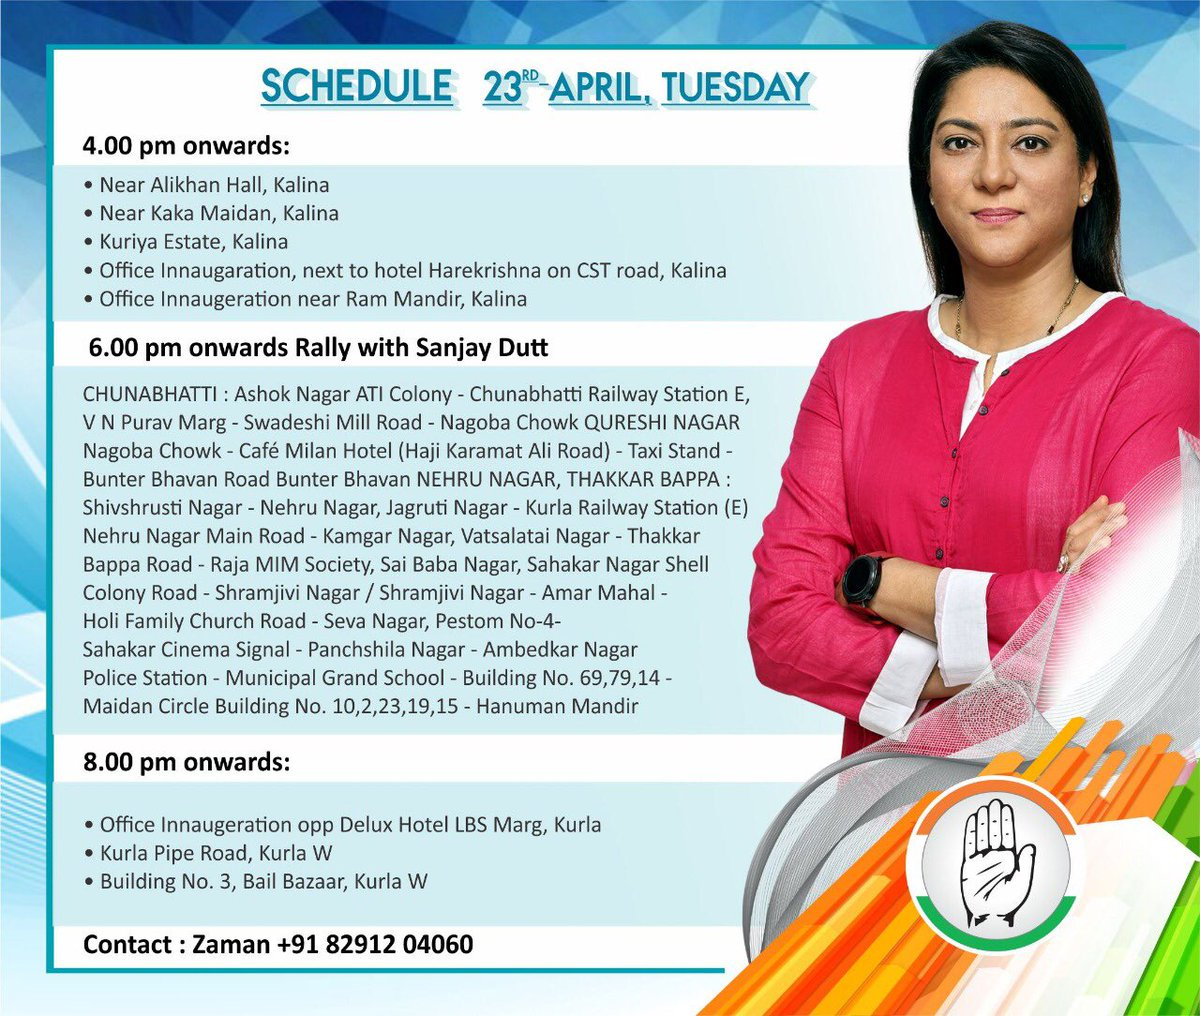 Join me for my rally in Chunnabhatti on 23rd April, Tuesday at 6pm with my brother @duttsanjay<br>http://pic.twitter.com/NZS22Yphd0